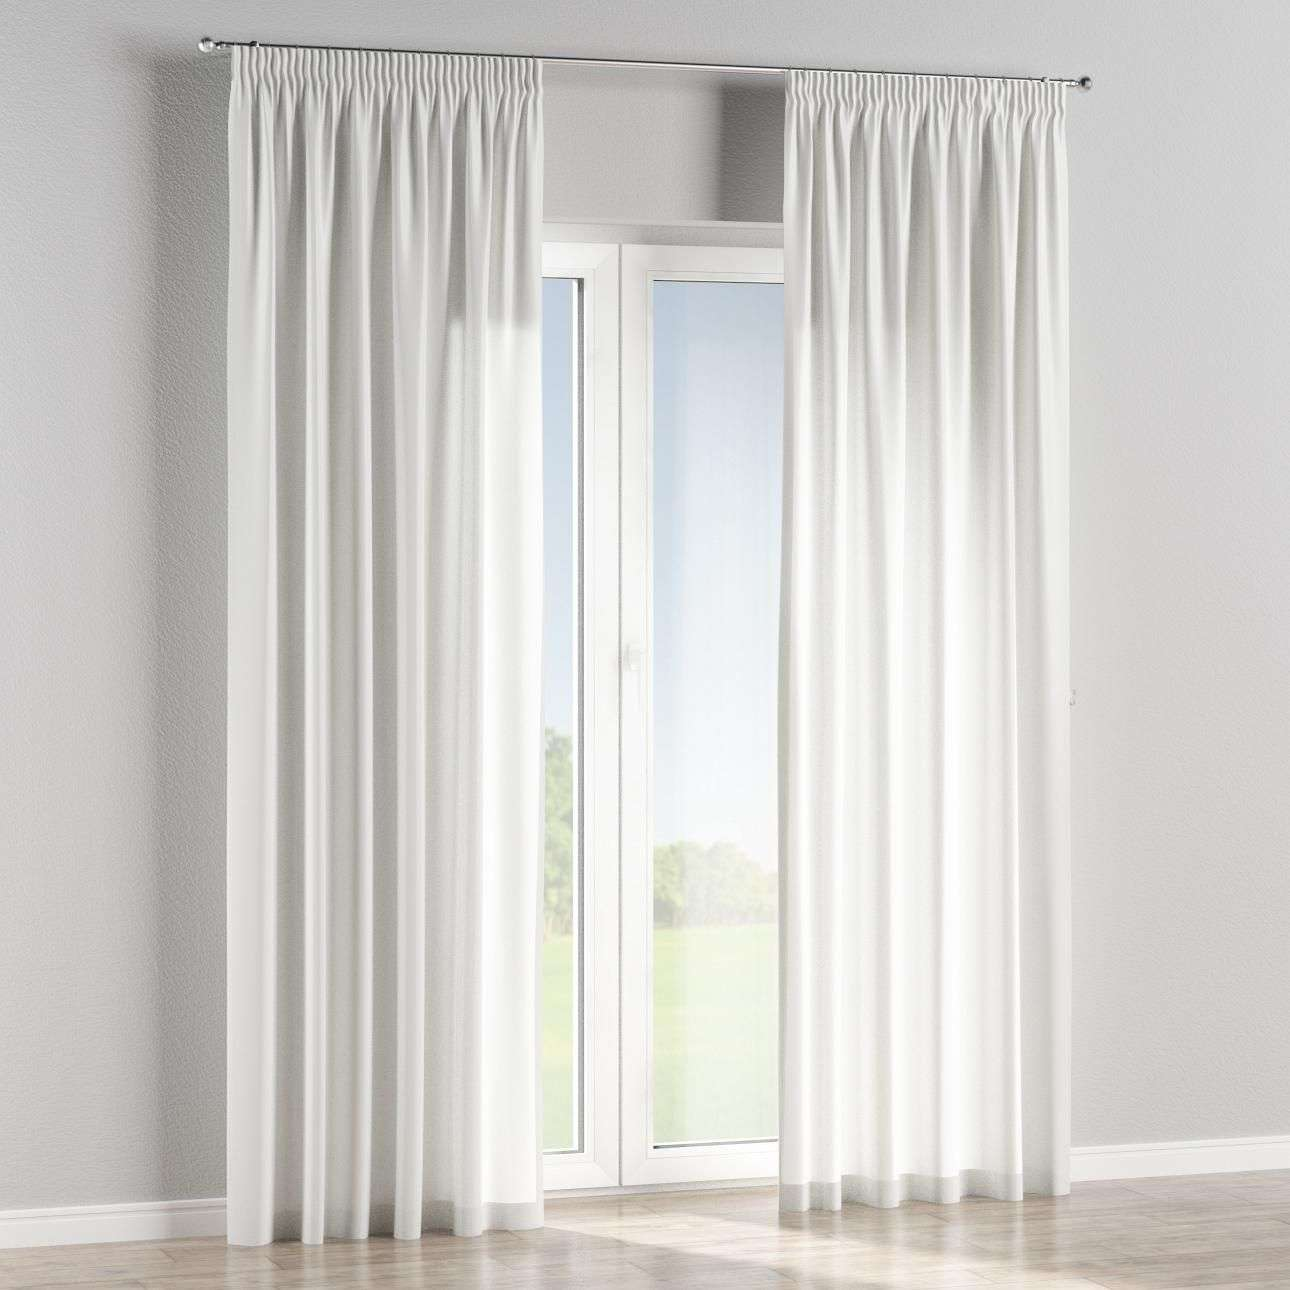 Pencil pleat curtains in collection Taffeta , fabric: 103-70